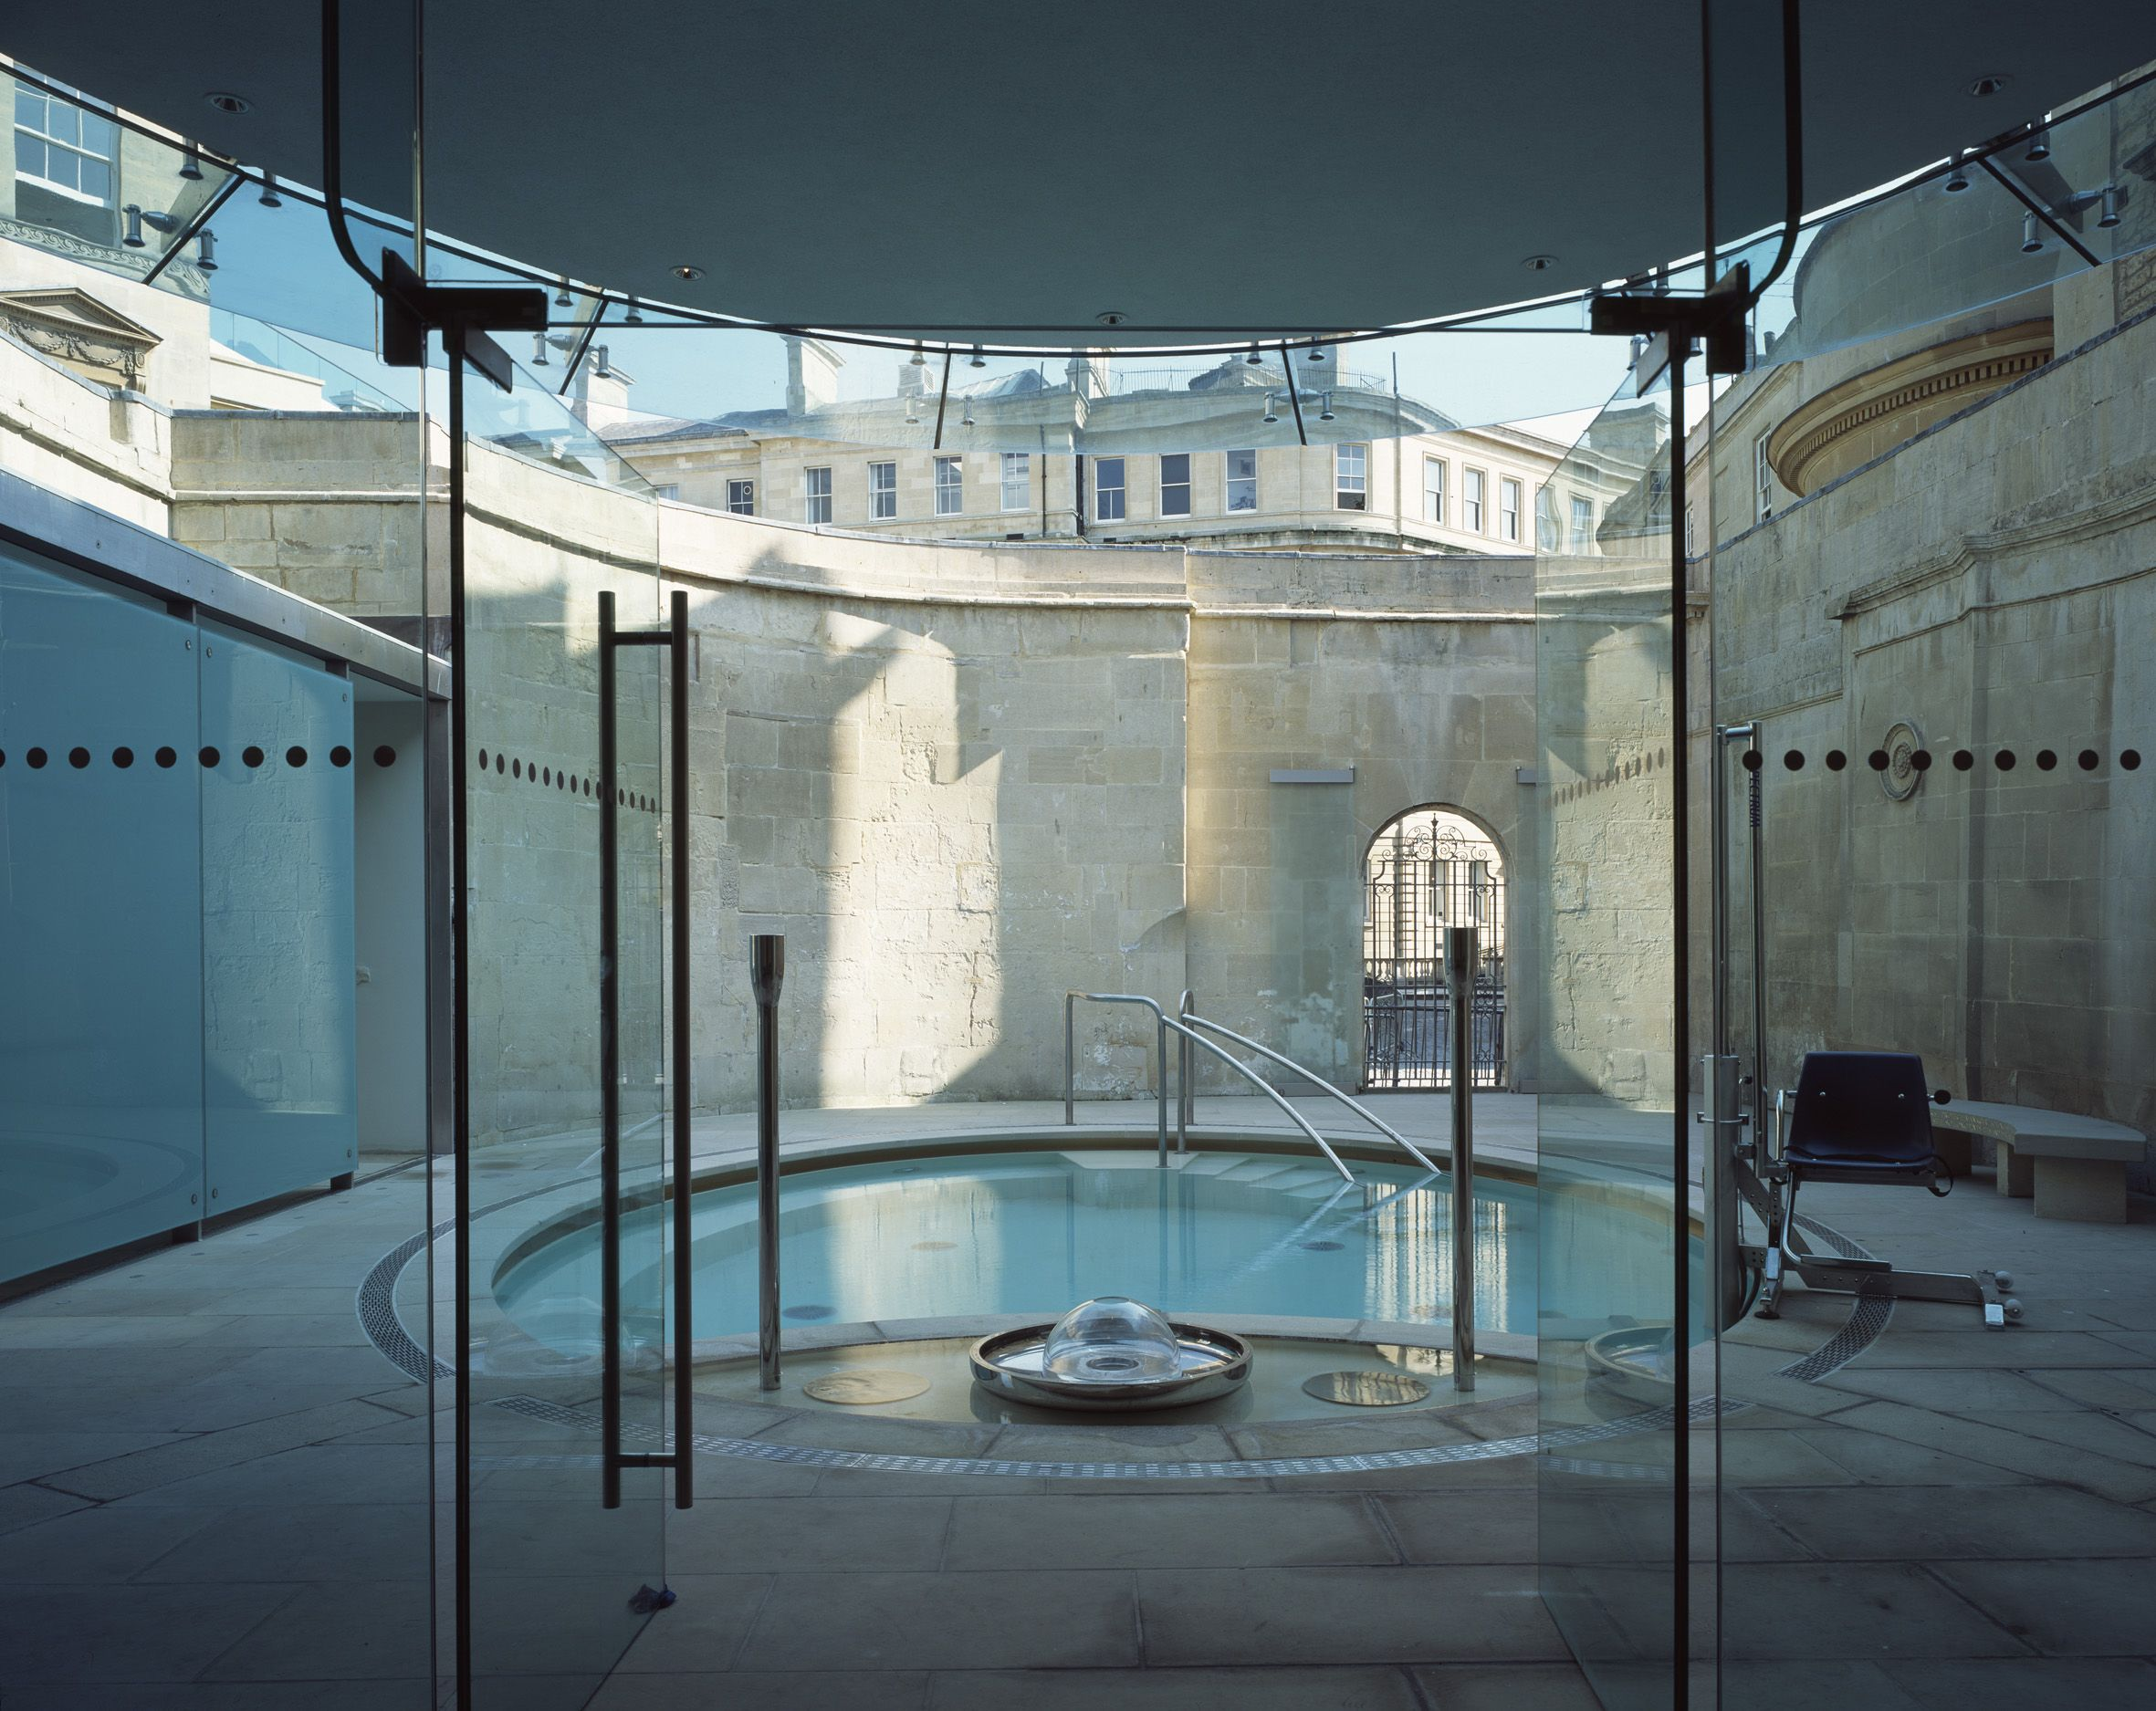 Bathing In Bath, Britains Only Thermal Spa | Pinterest | Bath uk ...